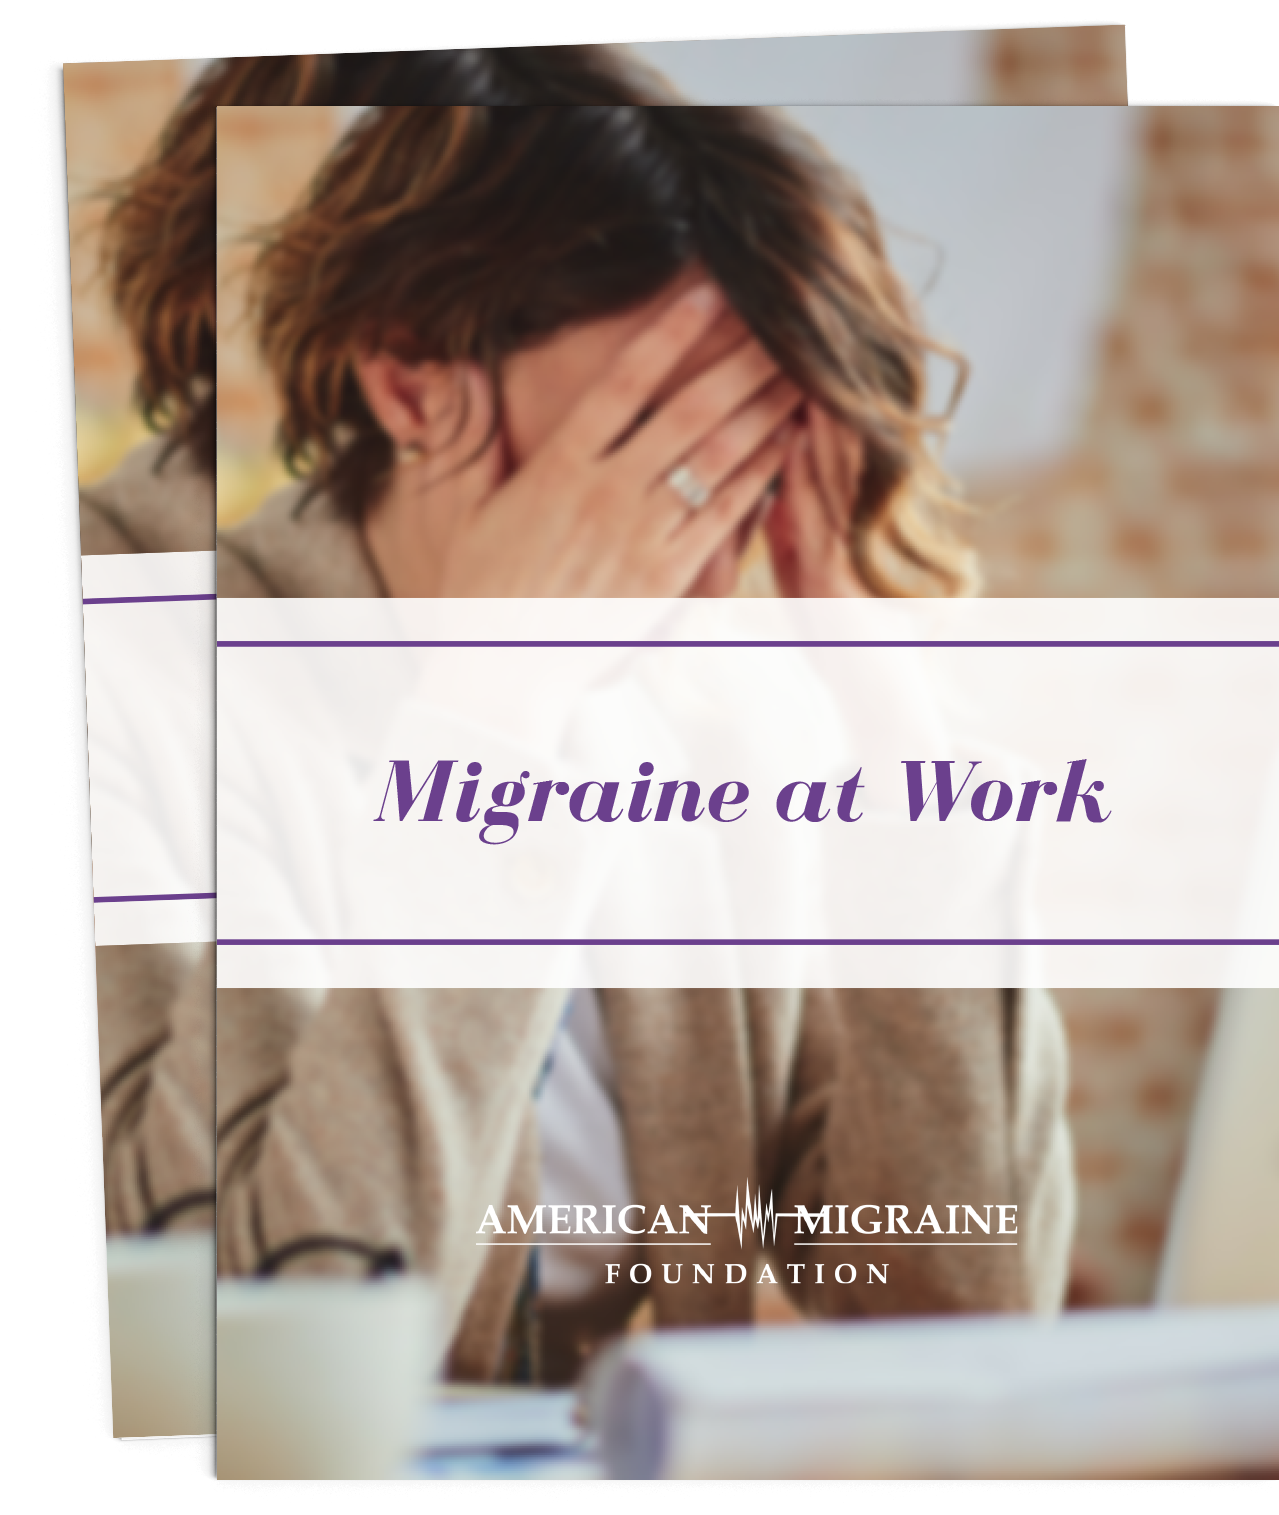 Migraine at Work (2).png